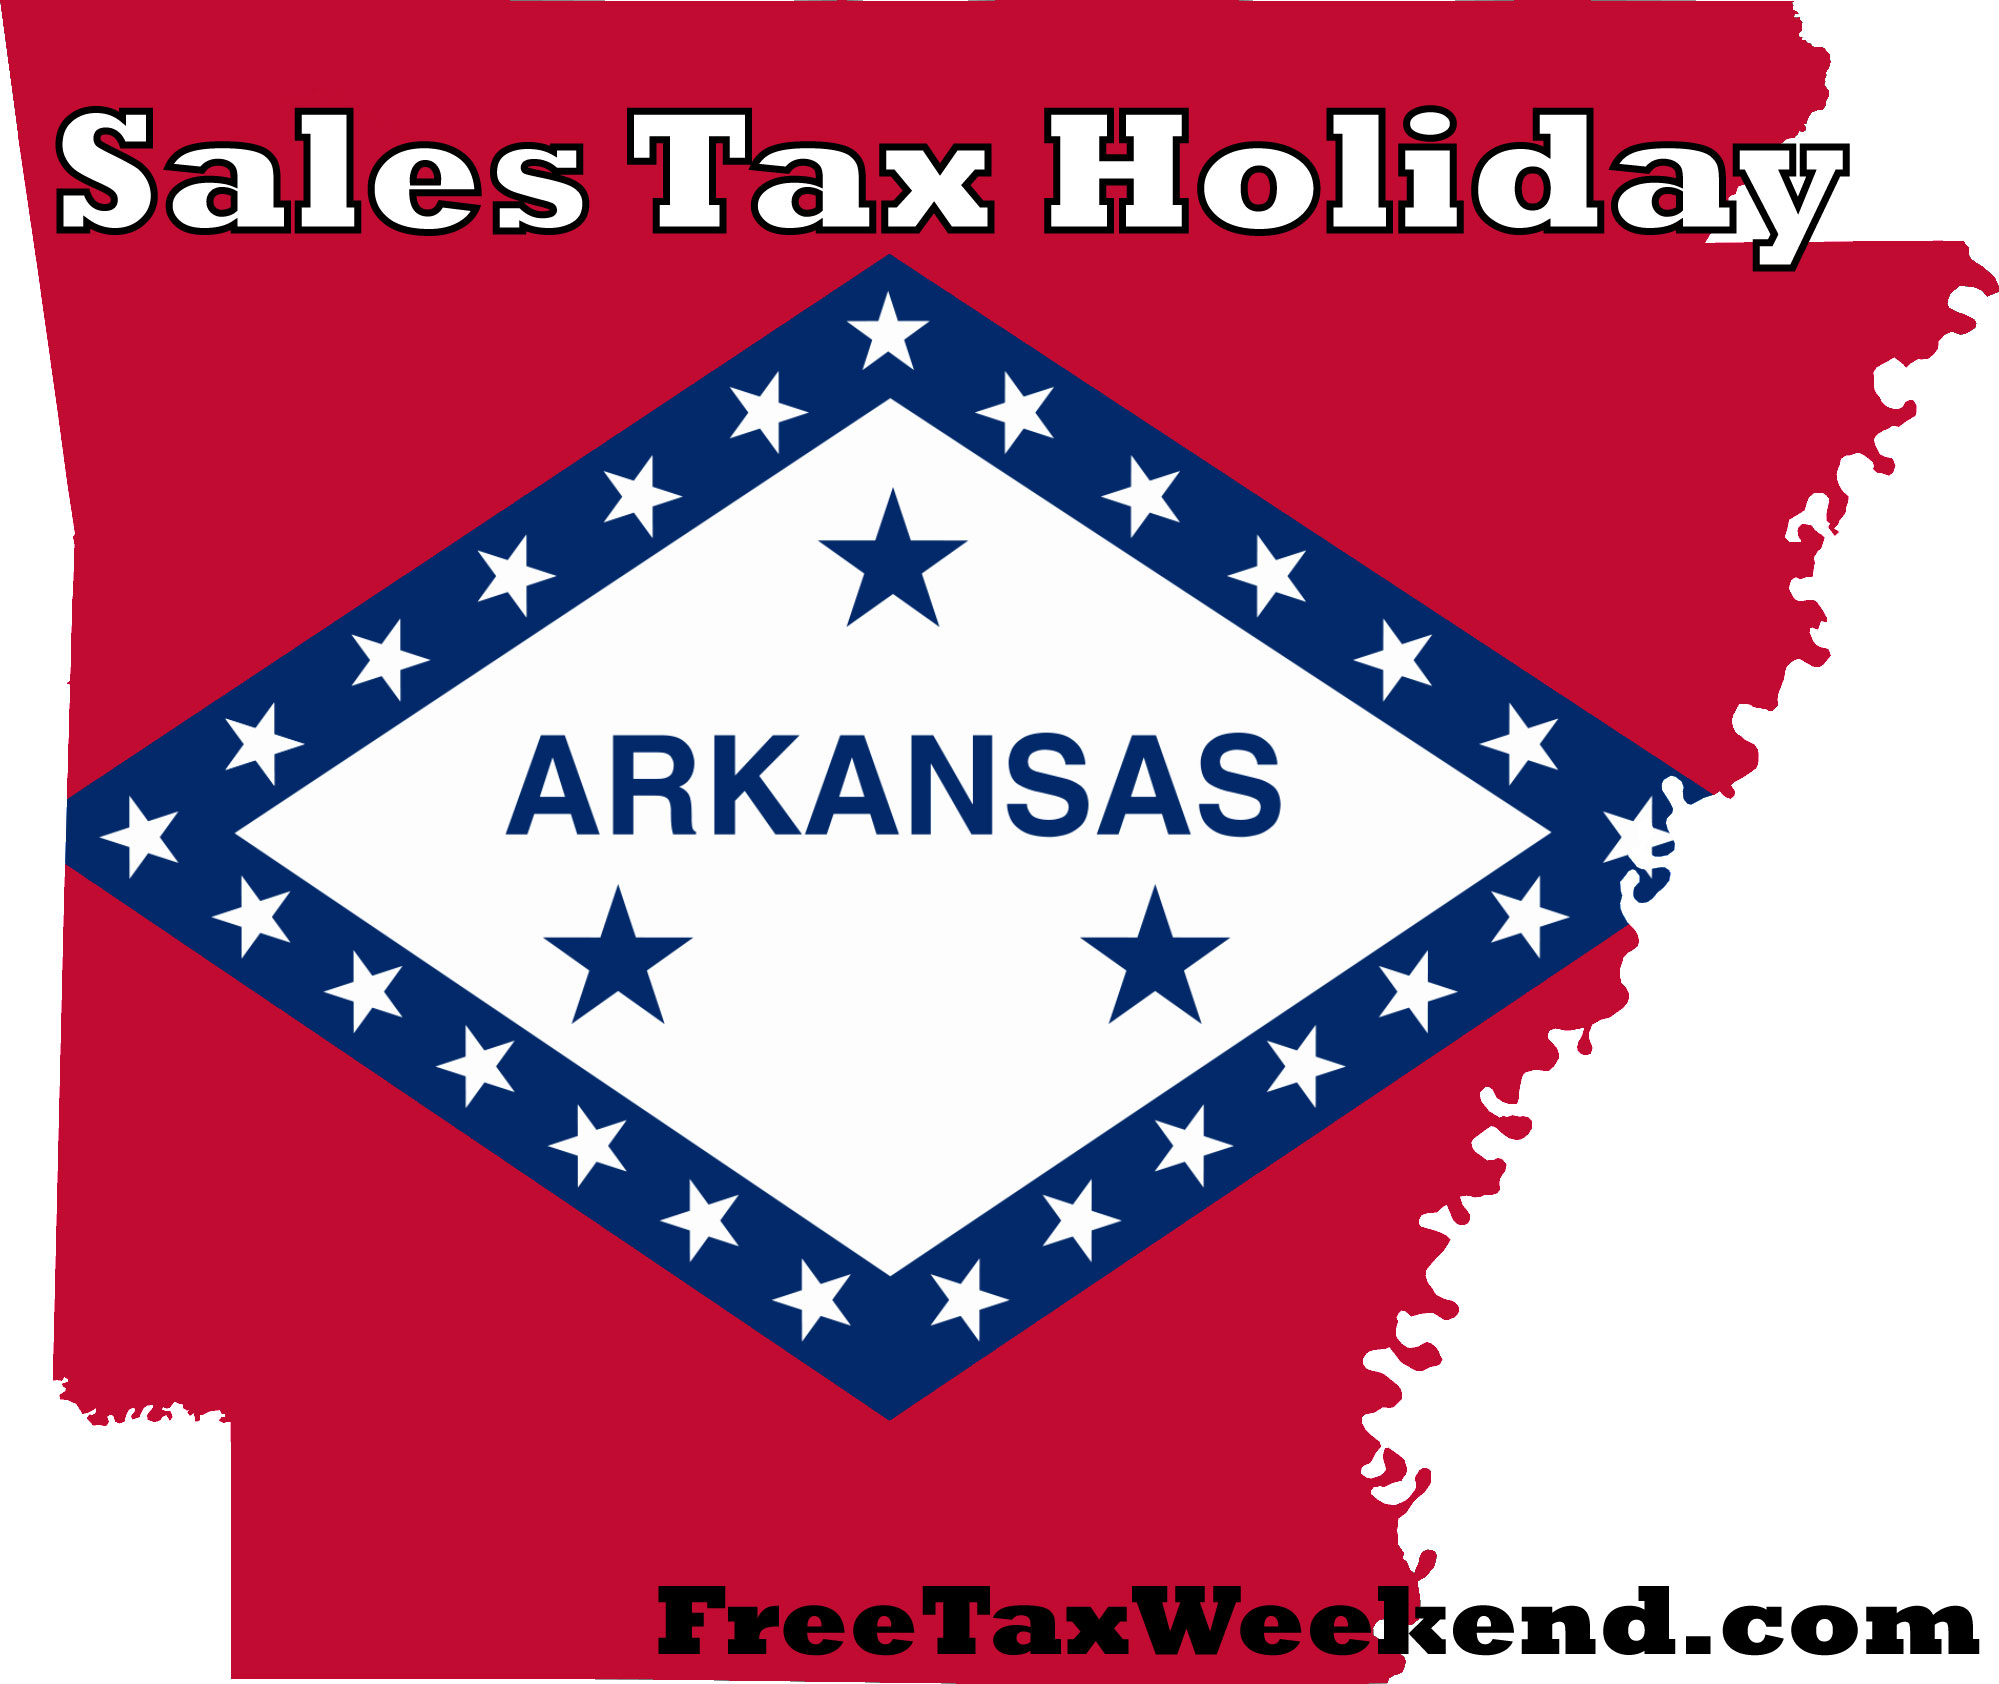 Arkansas Sales Tax Holiday in review by Arkansas lawmakers